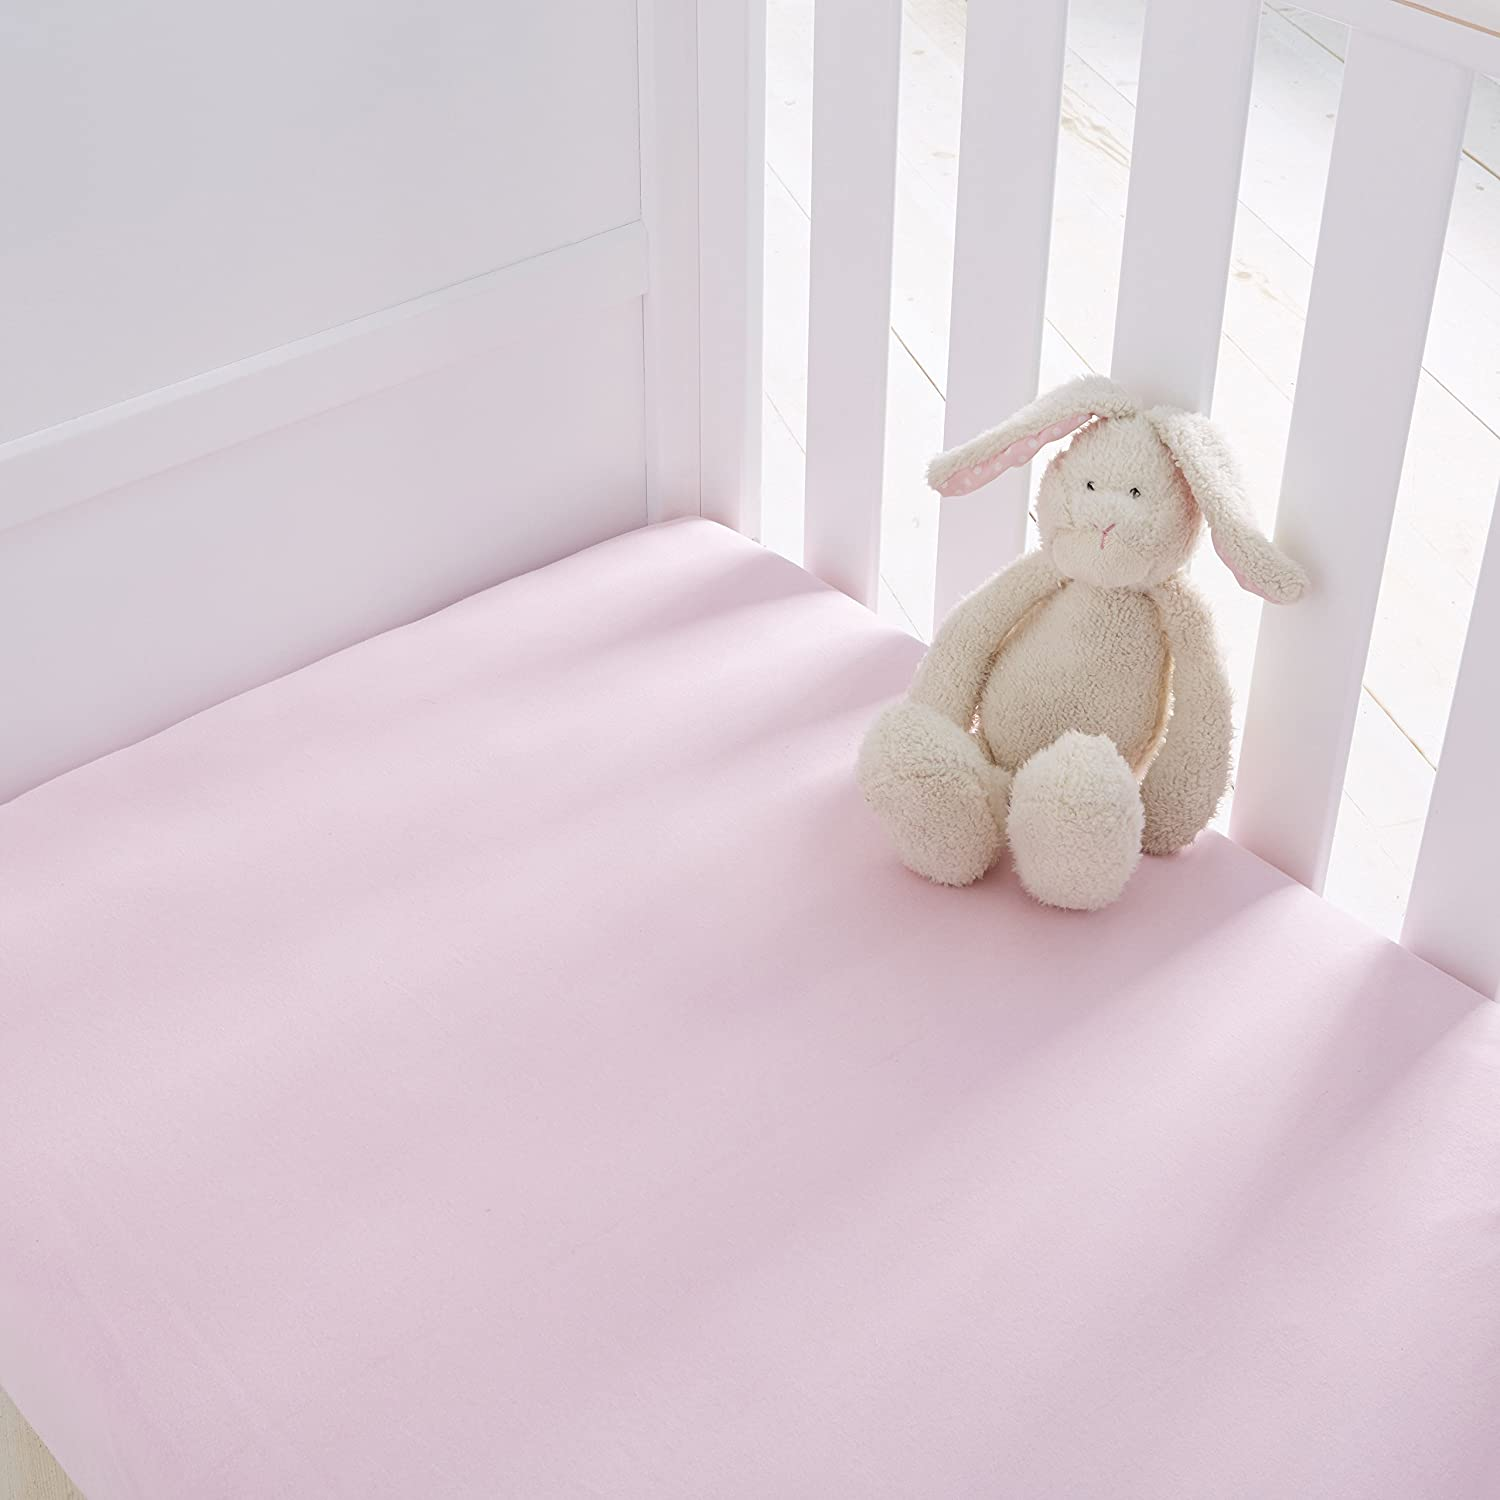 Silentnight Safe Nights Cot Fitted Sheets (Pack of 2) - White